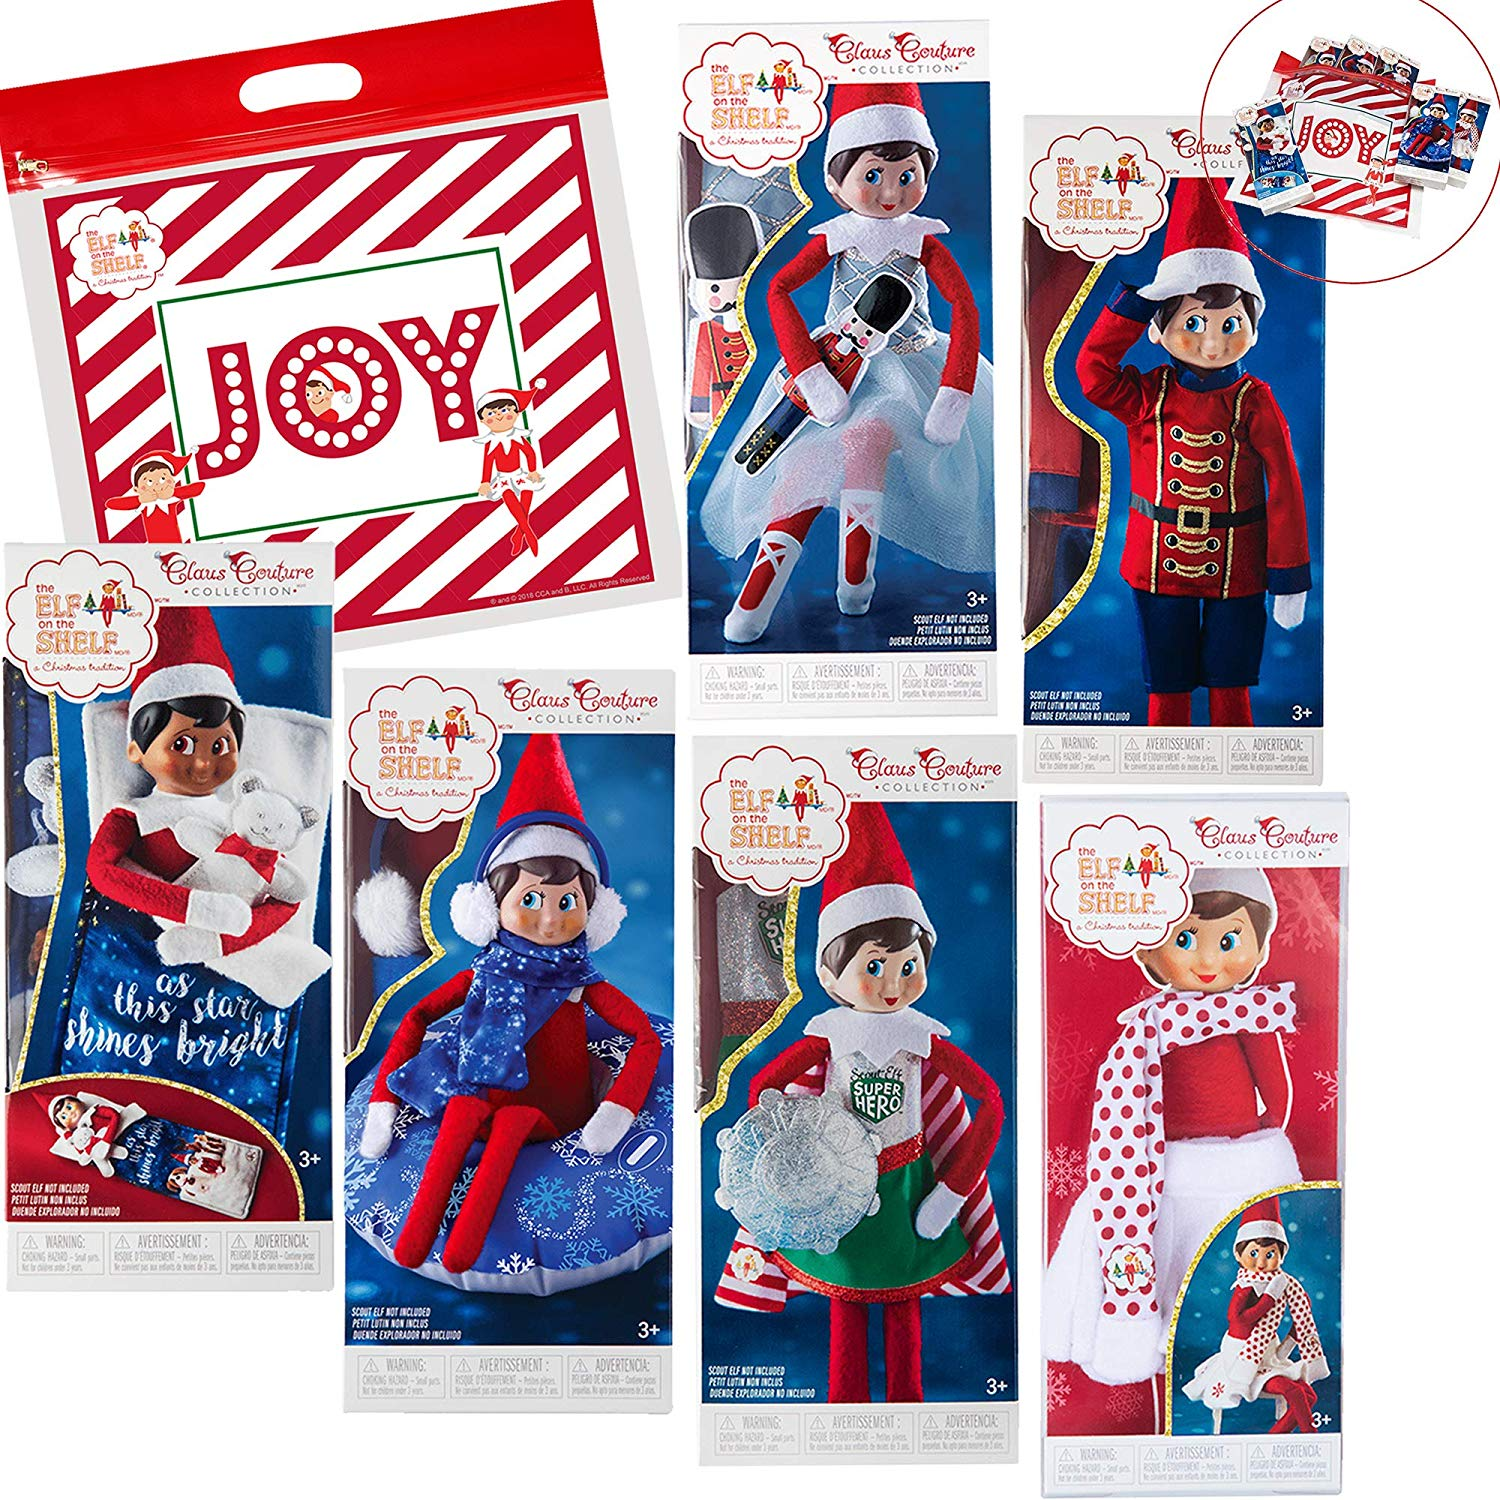 1f115e2d403 Elf on The Shelf Claus Couture All New 2018 Ultimate Scout Elf Accessories  Pack